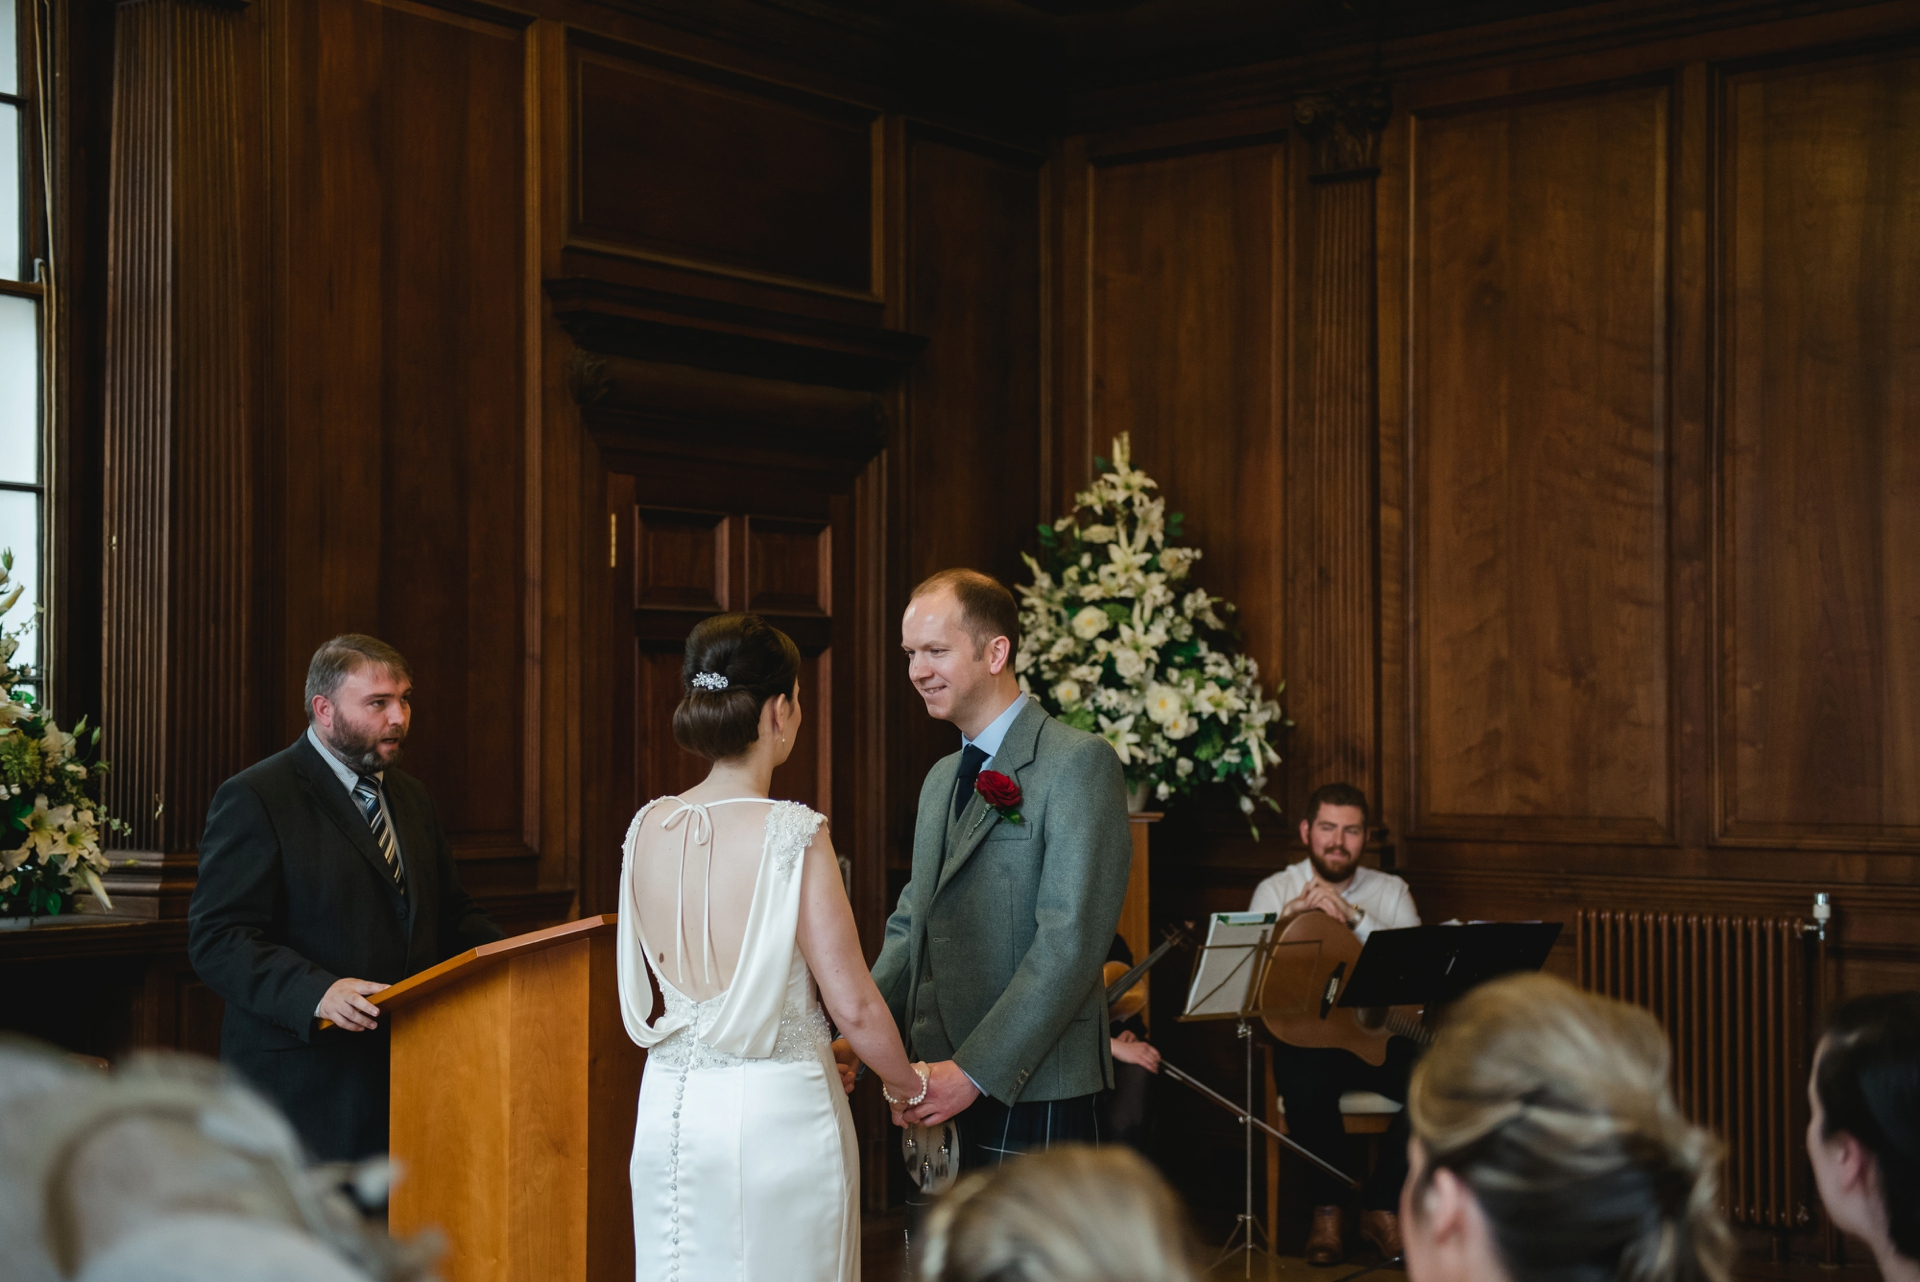 Edinburgh City Chambers Wedding_0013.jpg